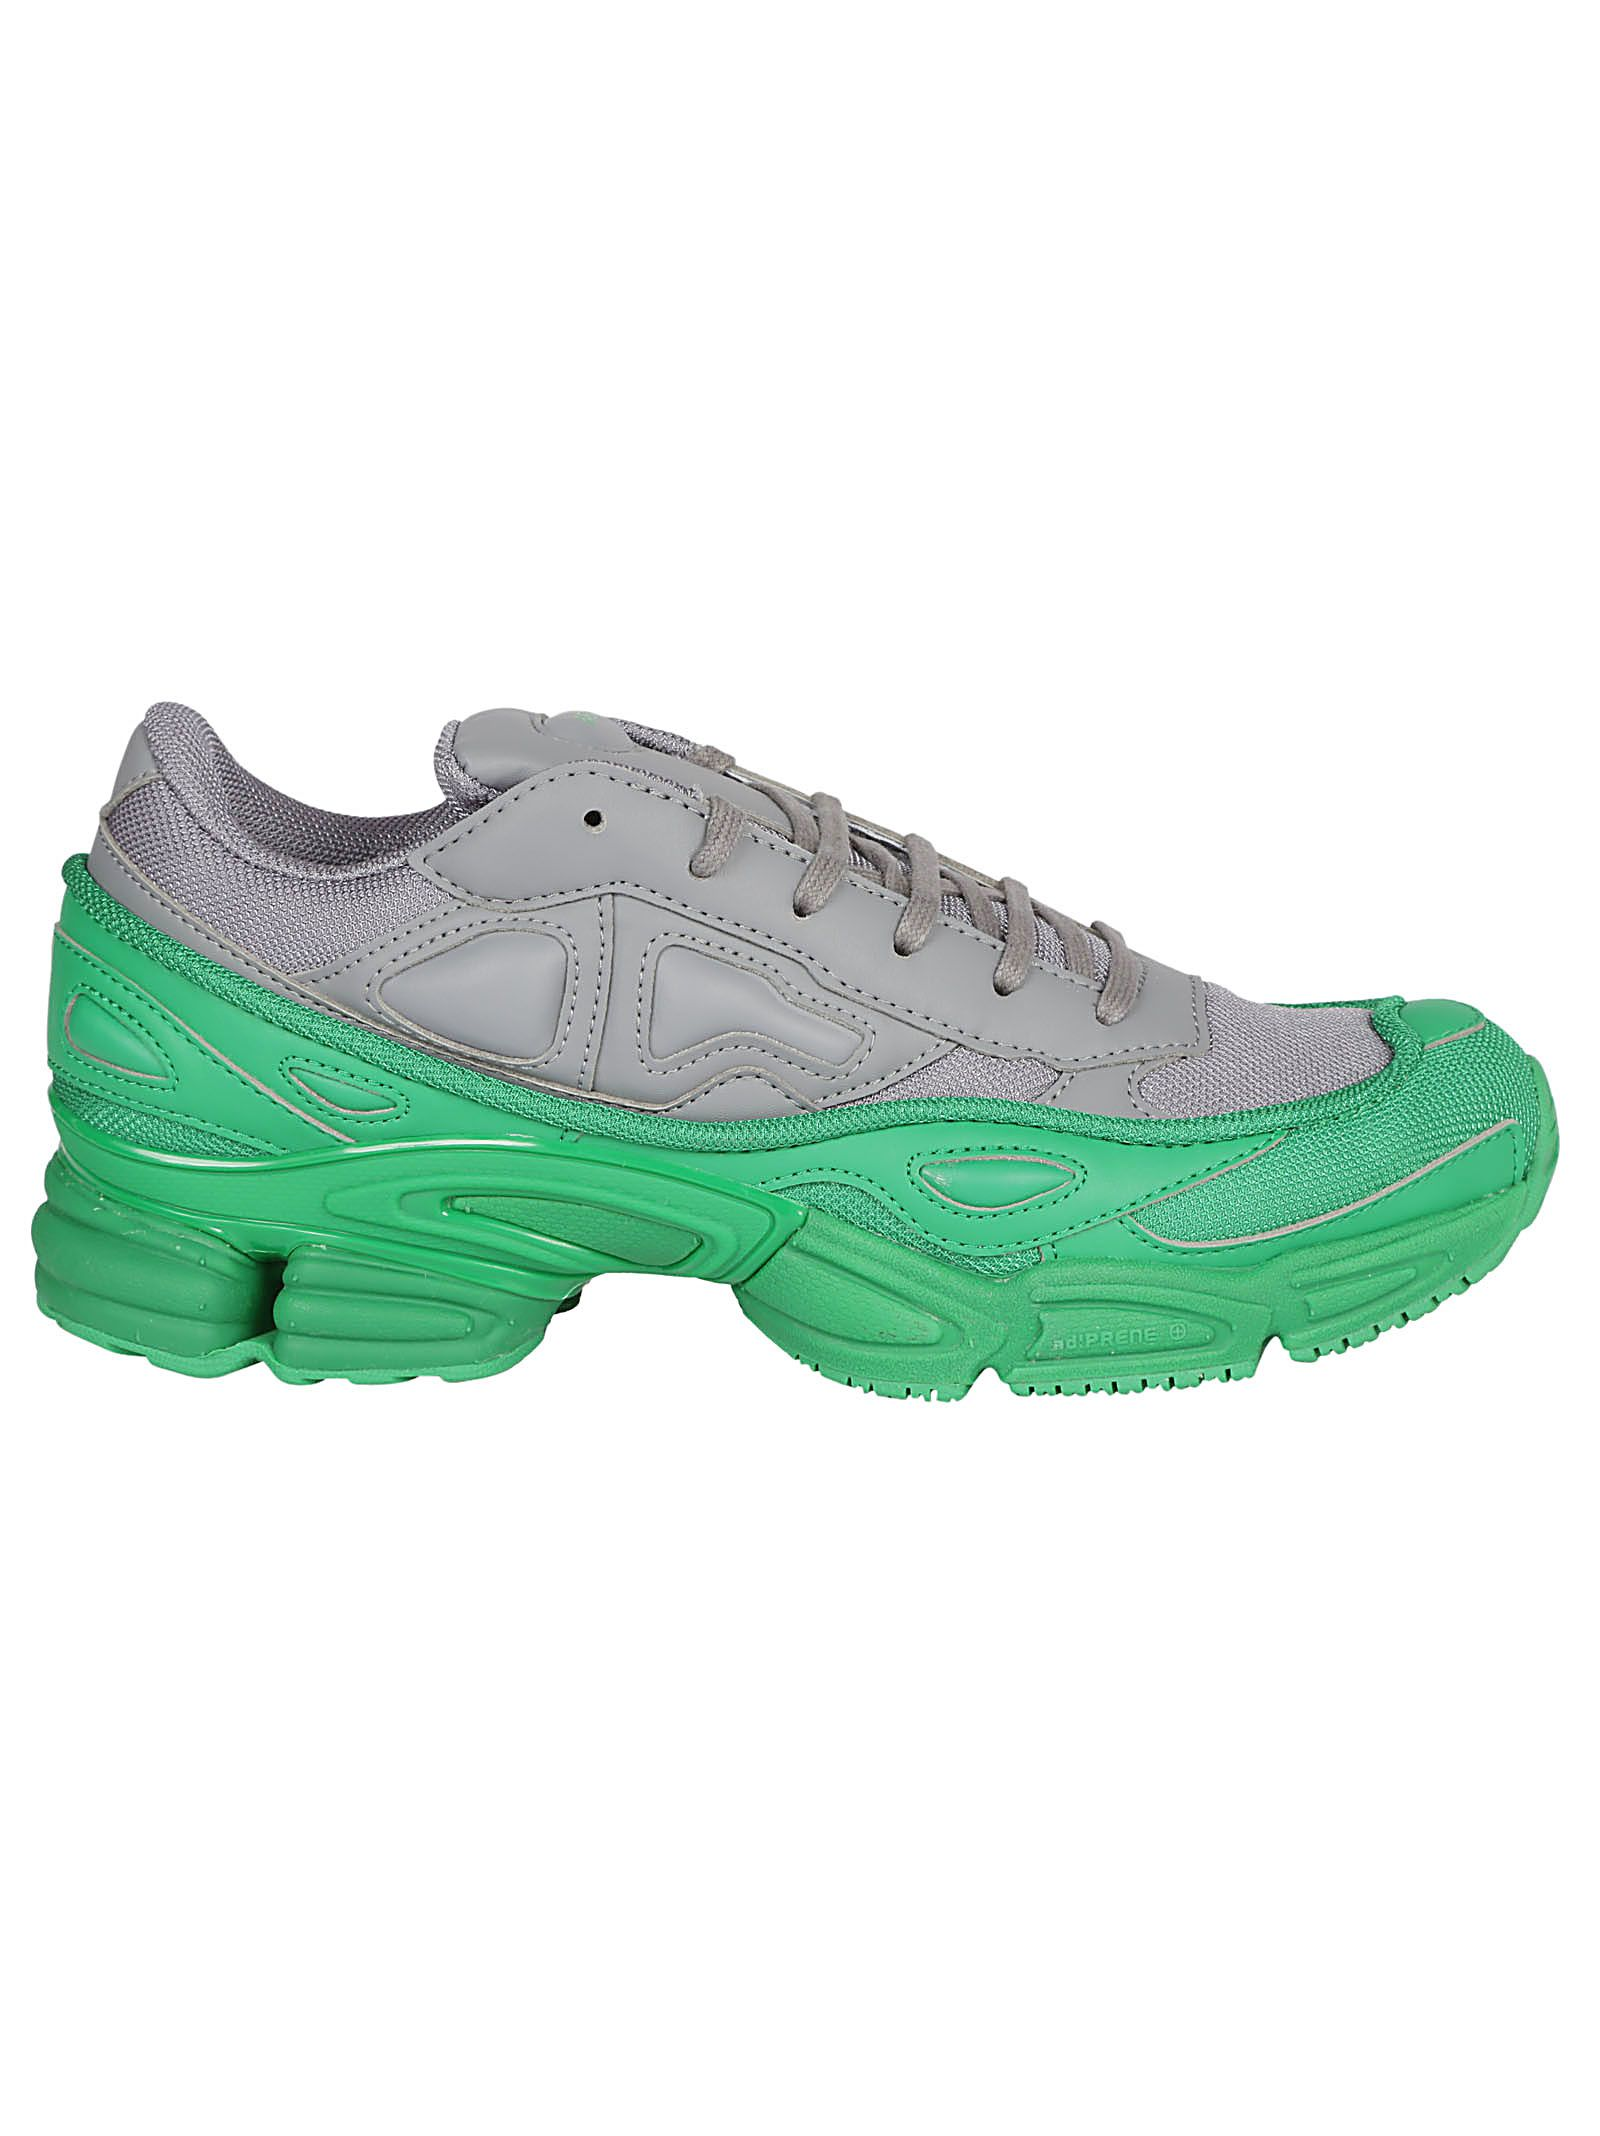 cd0d6587f8b427 Adidas By Raf Simons Rs Ozweego Sneakers - Green grey ...